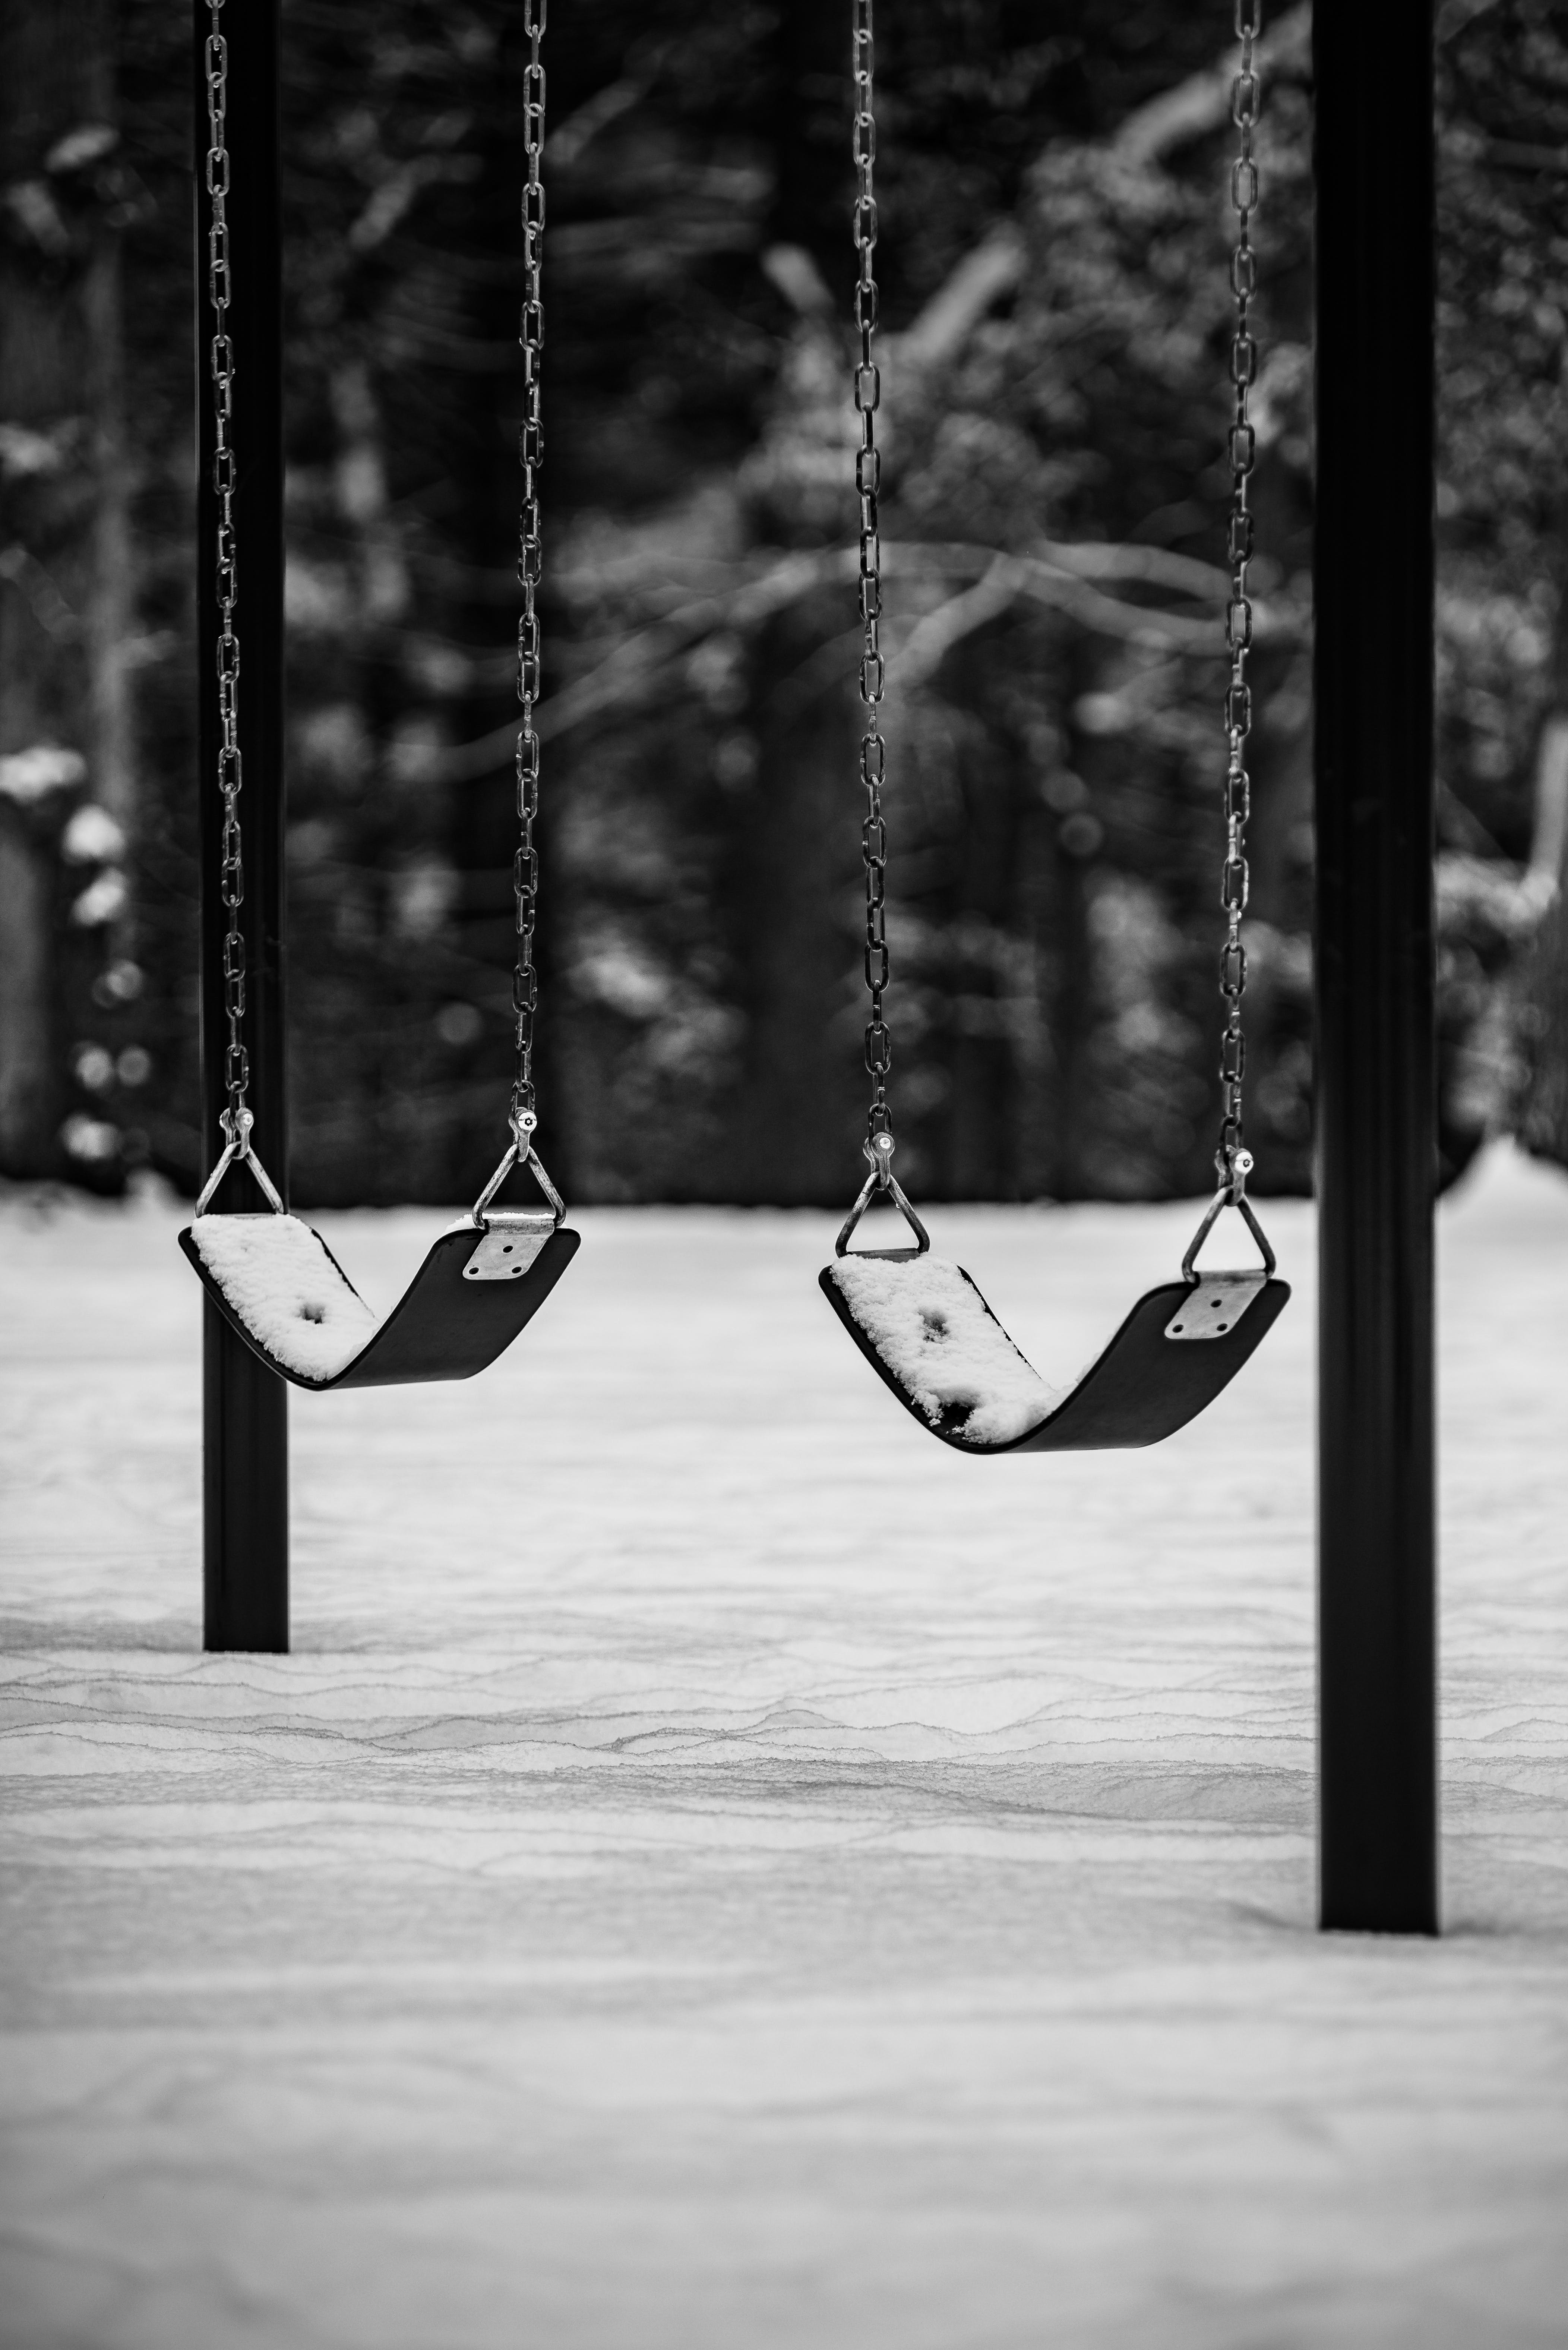 Grayscale Photo Of Outdoor Swings